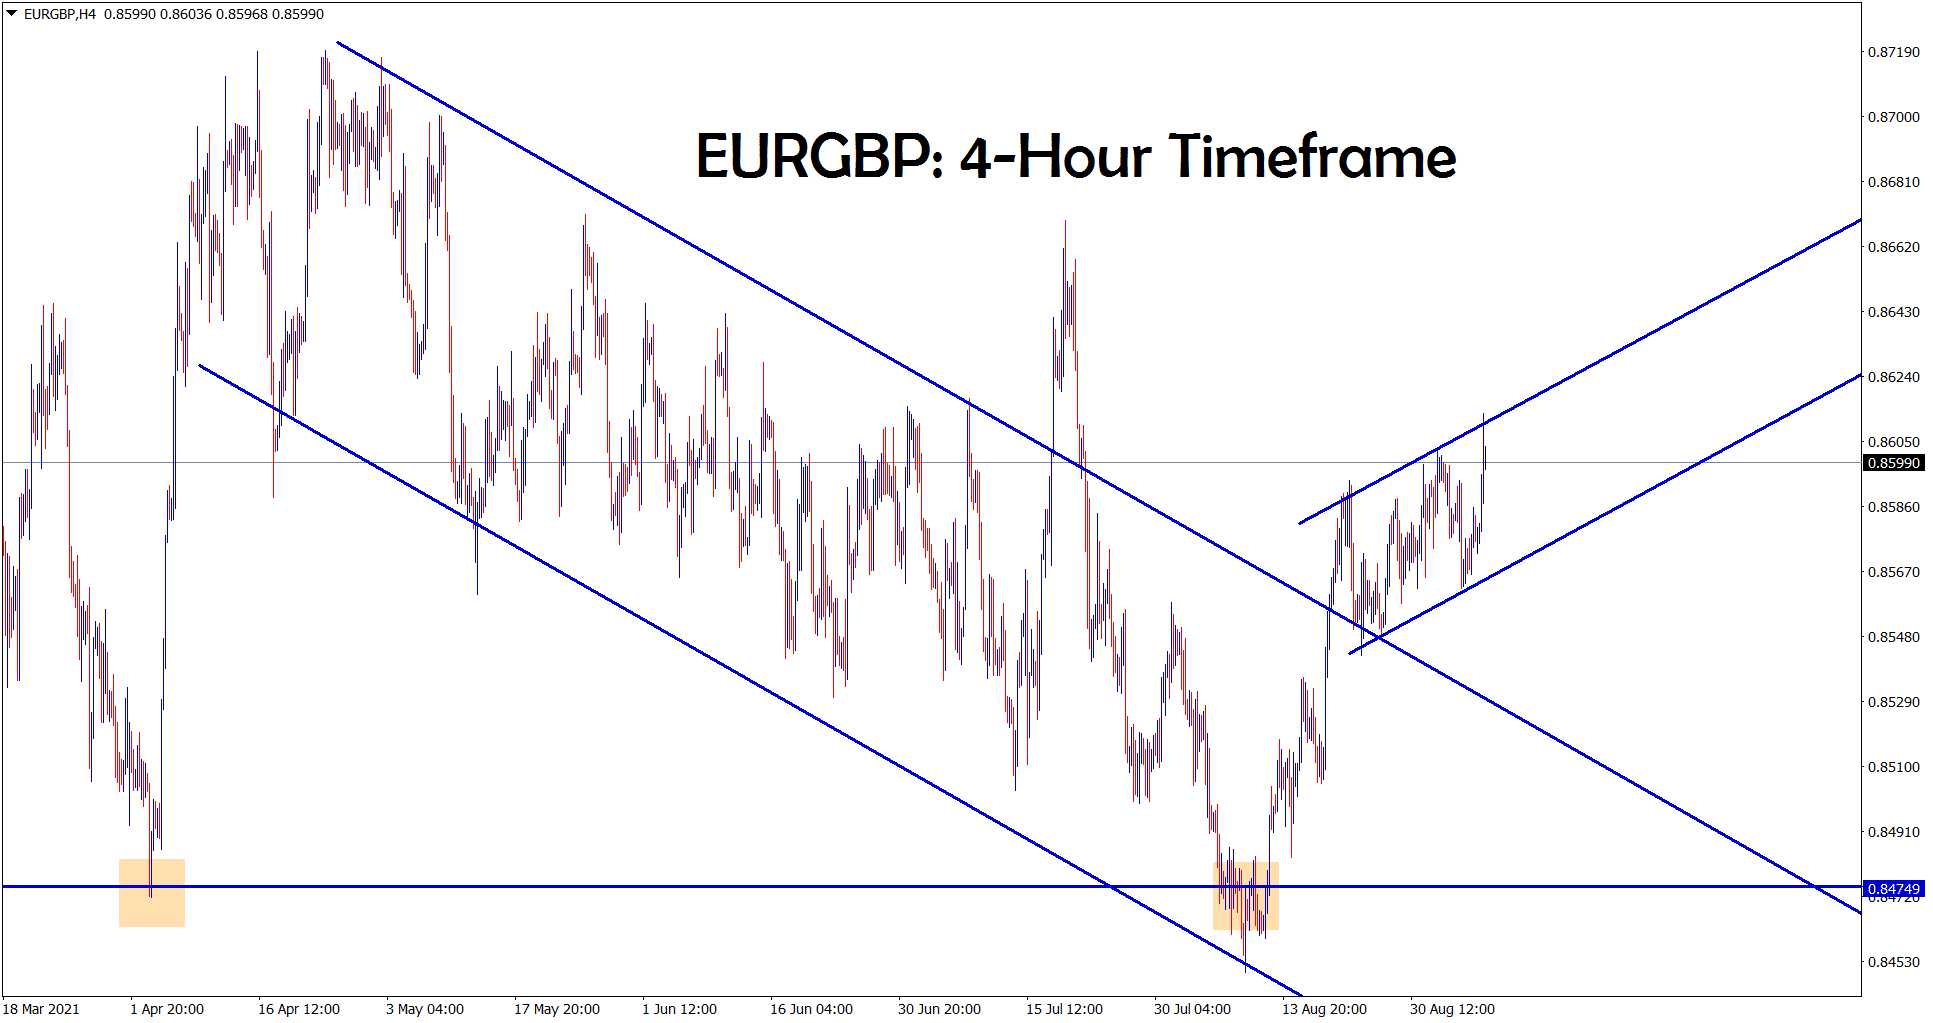 EURGBP is moving in a minor ascending channel range